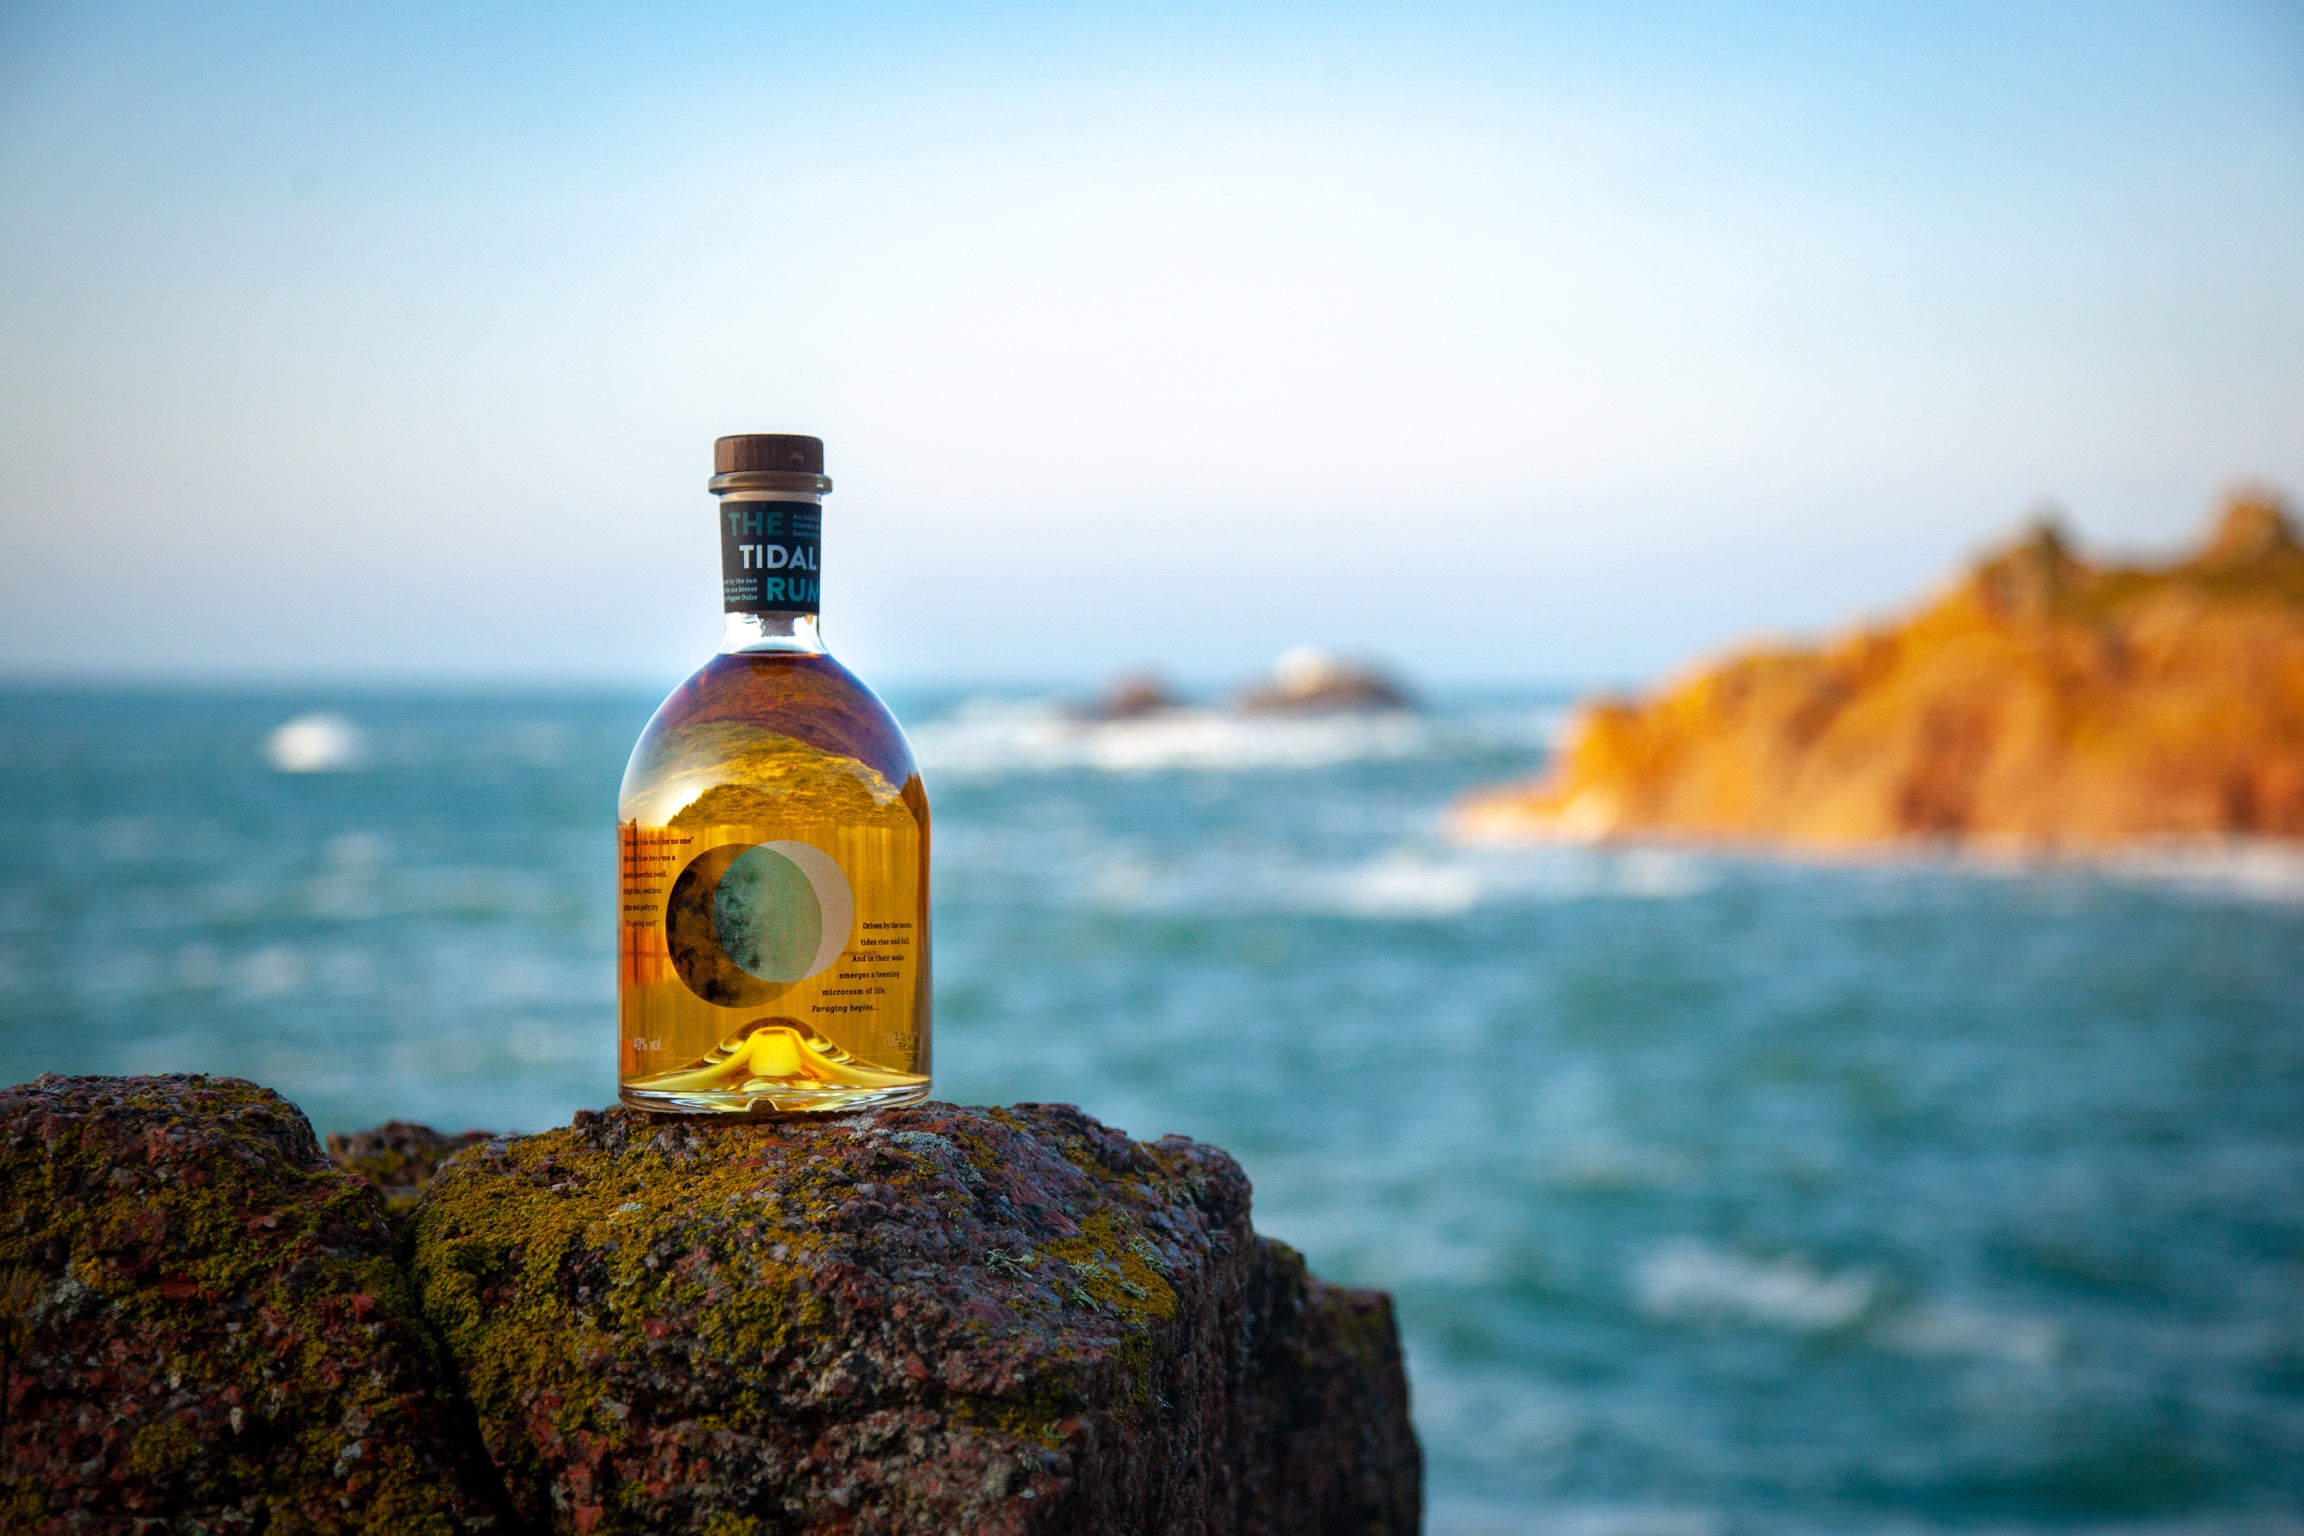 The Tidal Rum, 70cl